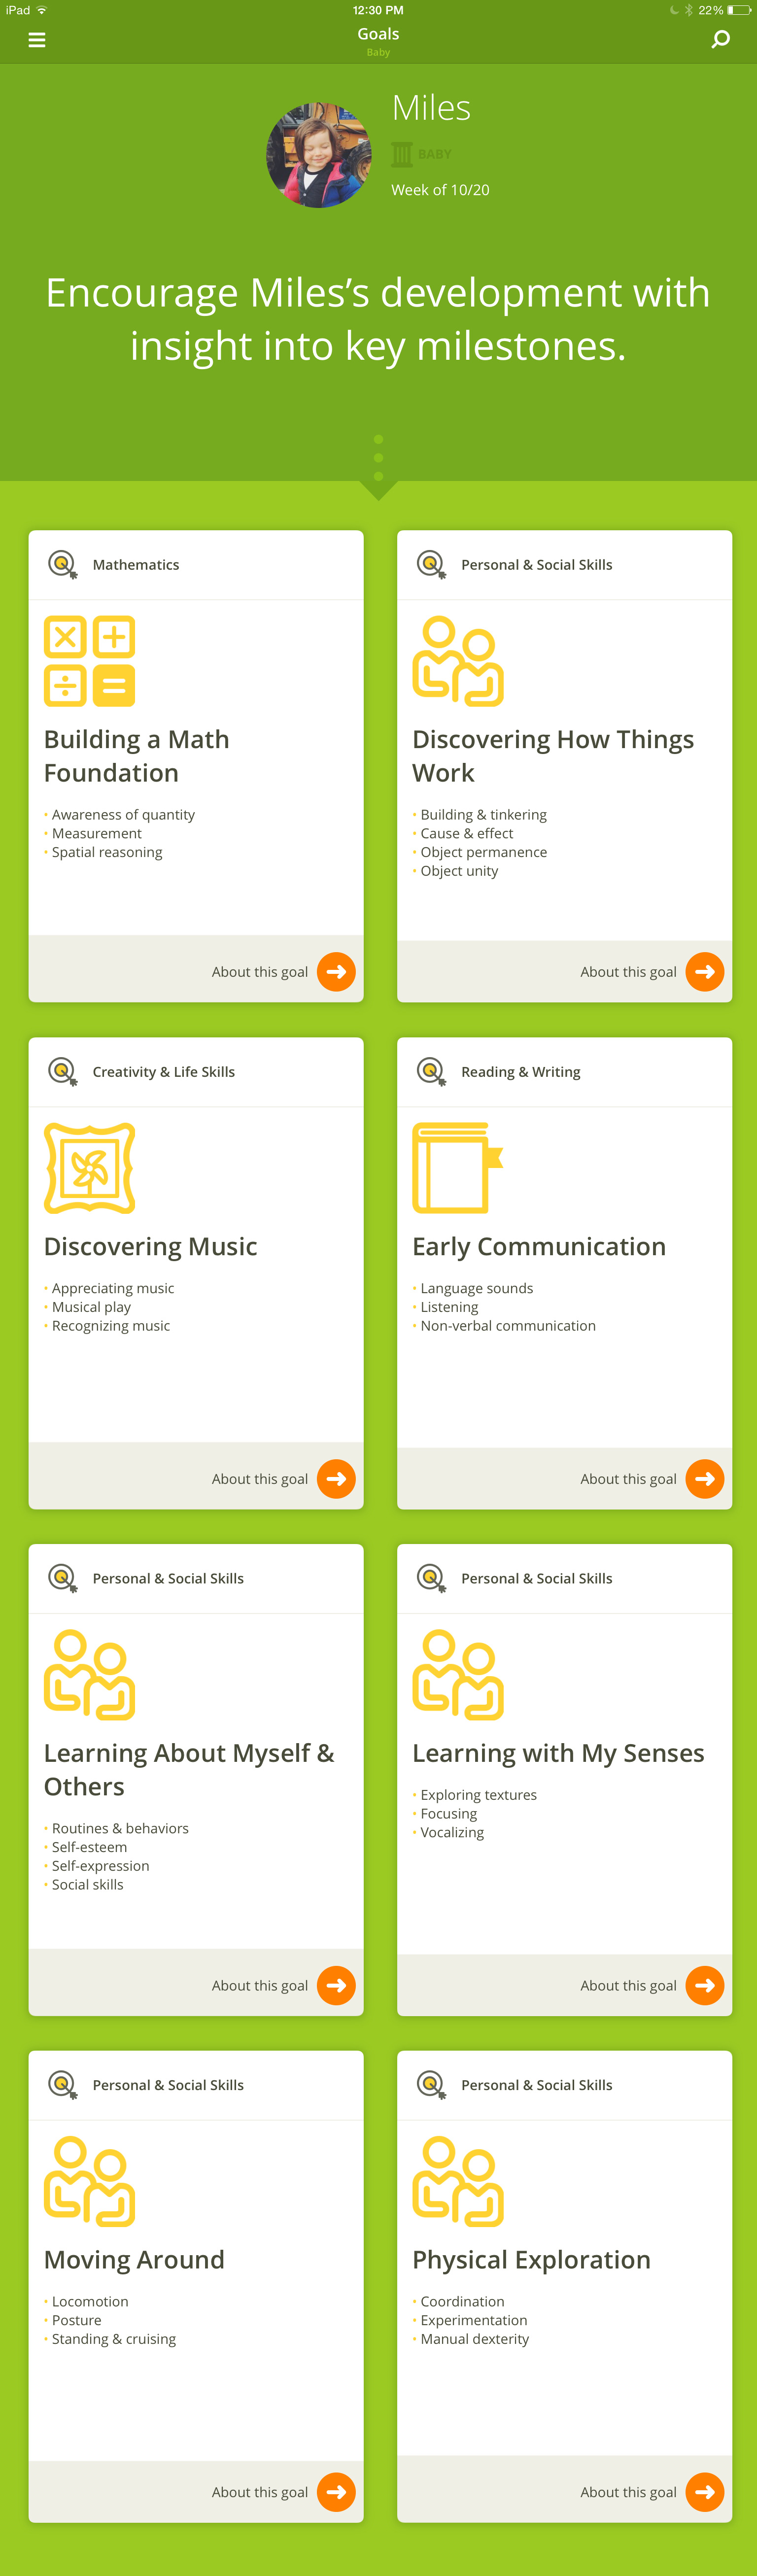 leapfrog_learningpath_milestones_01_opt